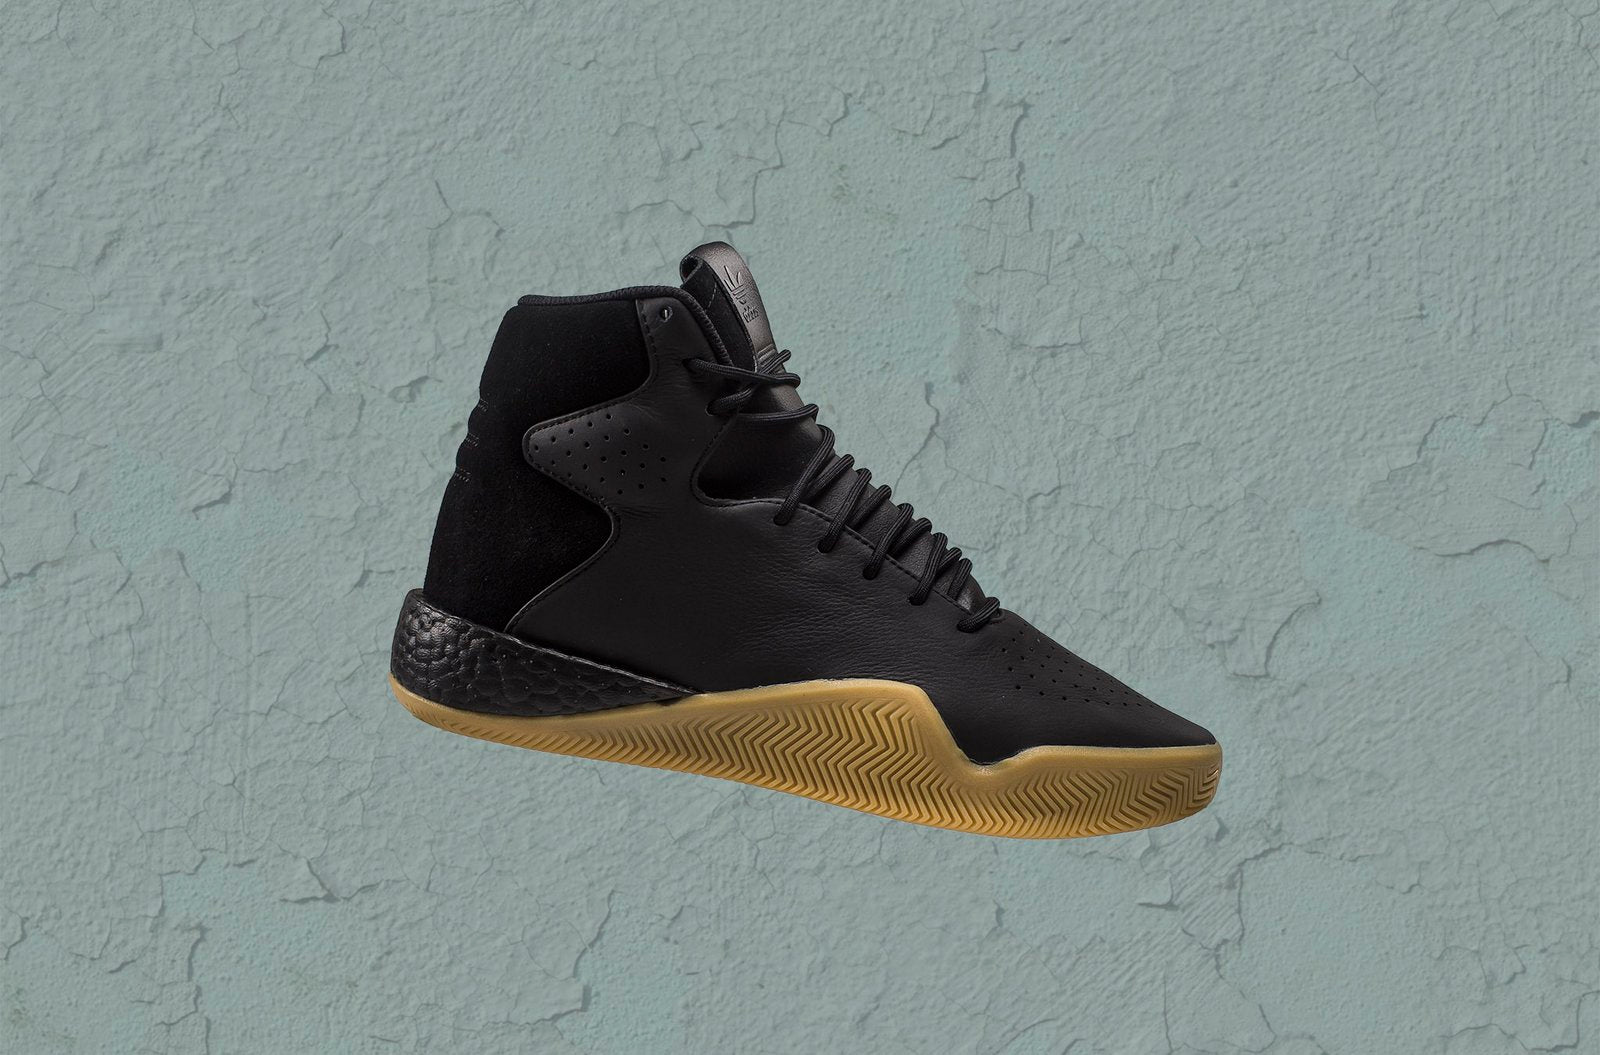 promo code 44739 dd8a9 adidas Tubular Instinct Boost Core Black - Oneness Boutique